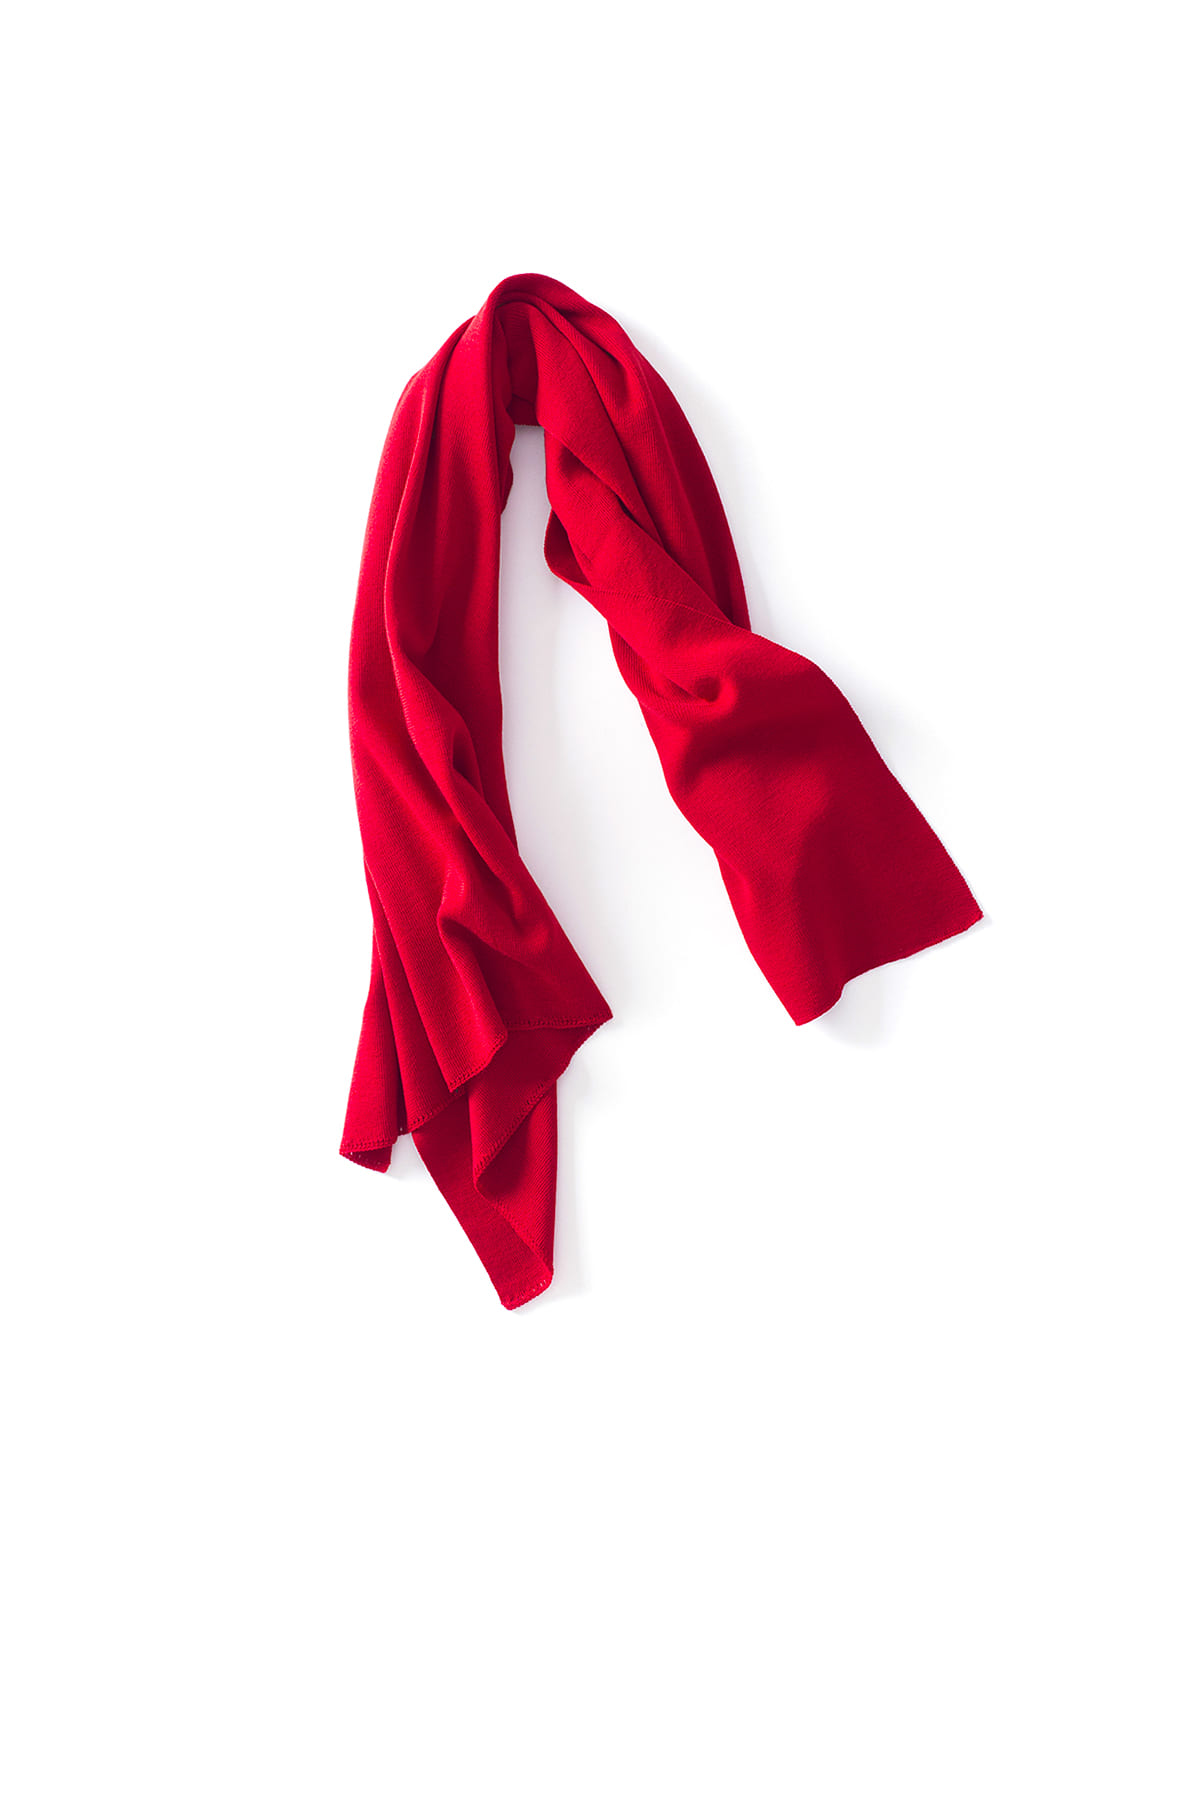 CAMO : Knit Scarf (Red)